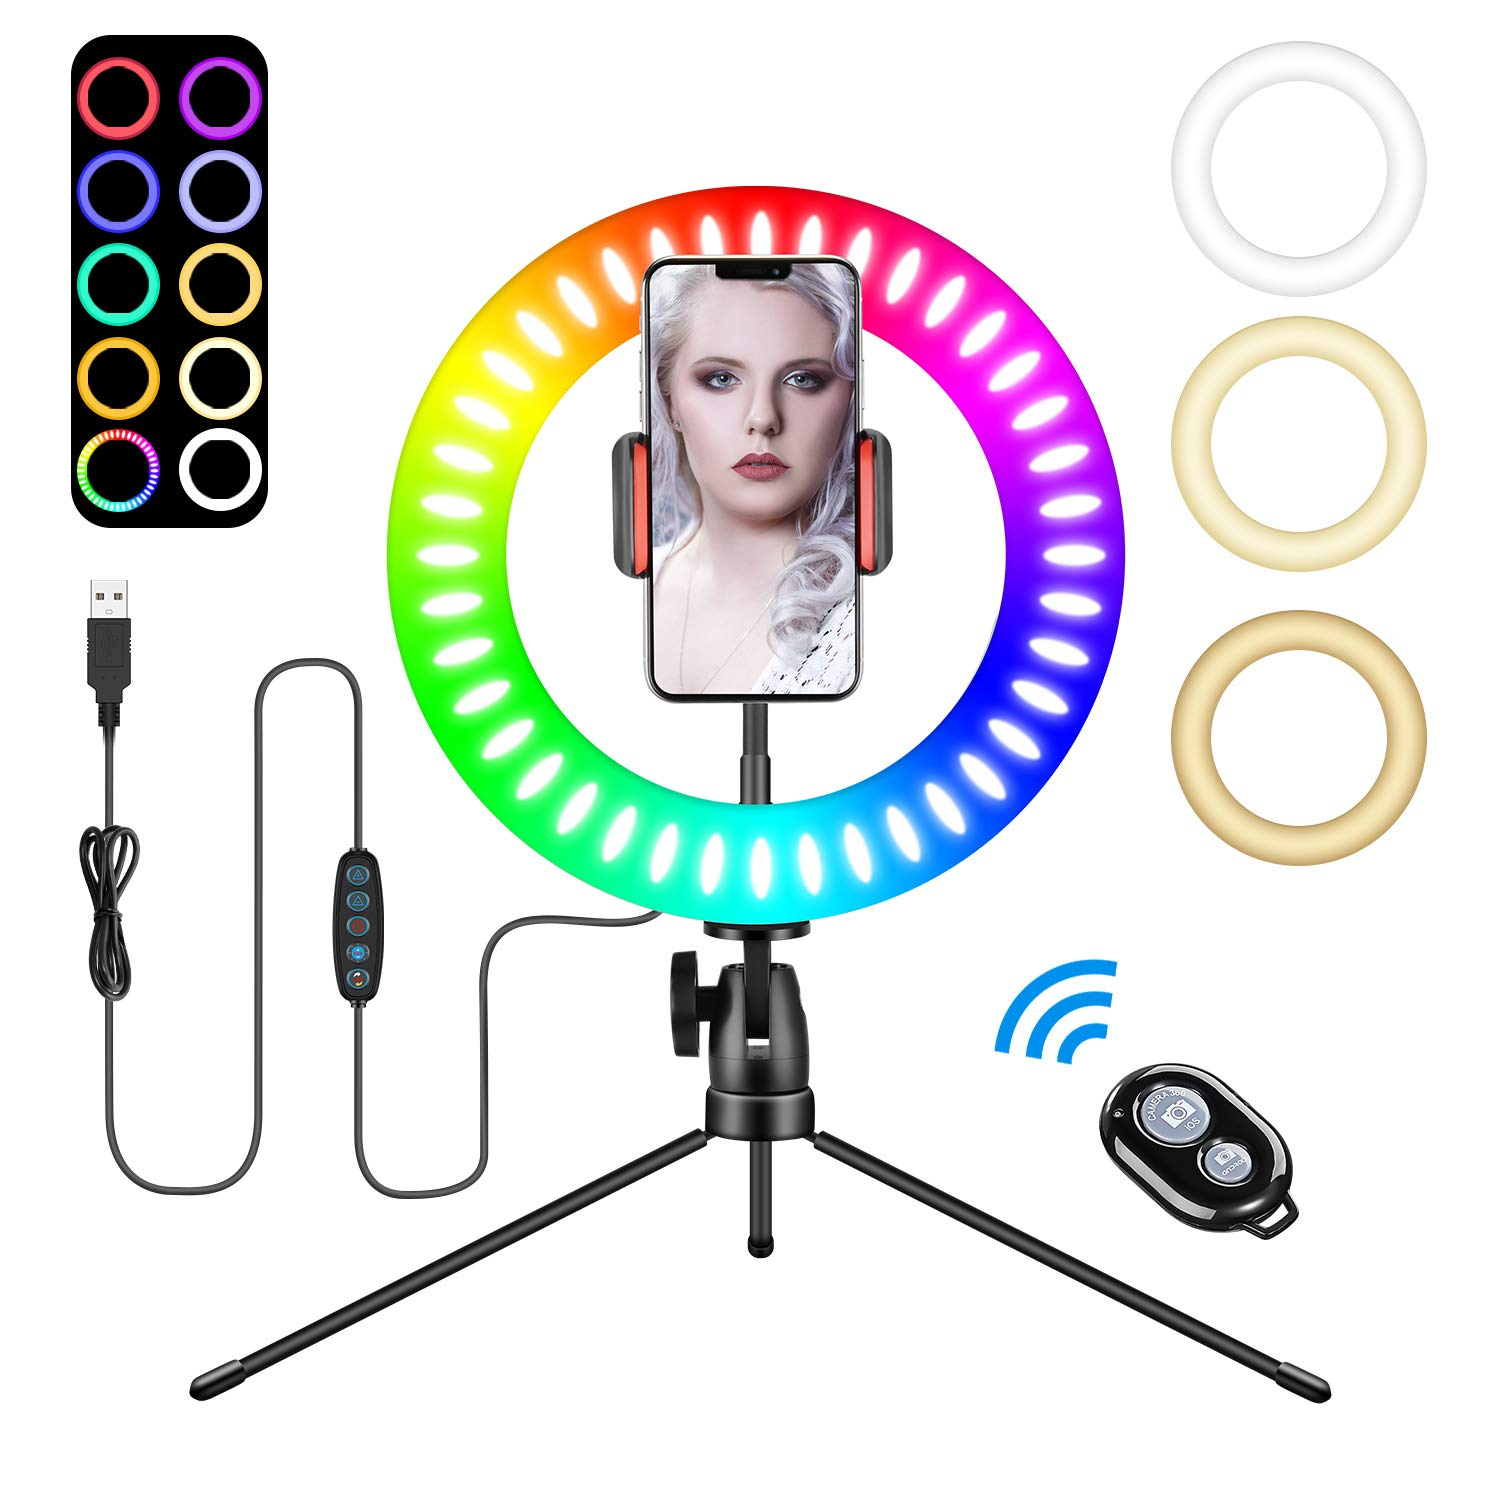 "Tenswall 6"" LED Ring Light with Tripod Stand for Live Stream,YouTube Video & Makeup Selfie, Mini Desktop LED Camera Light with Phone Holder Selfie Ring Light with 3 Light Modes & 11 Brightness Levels"